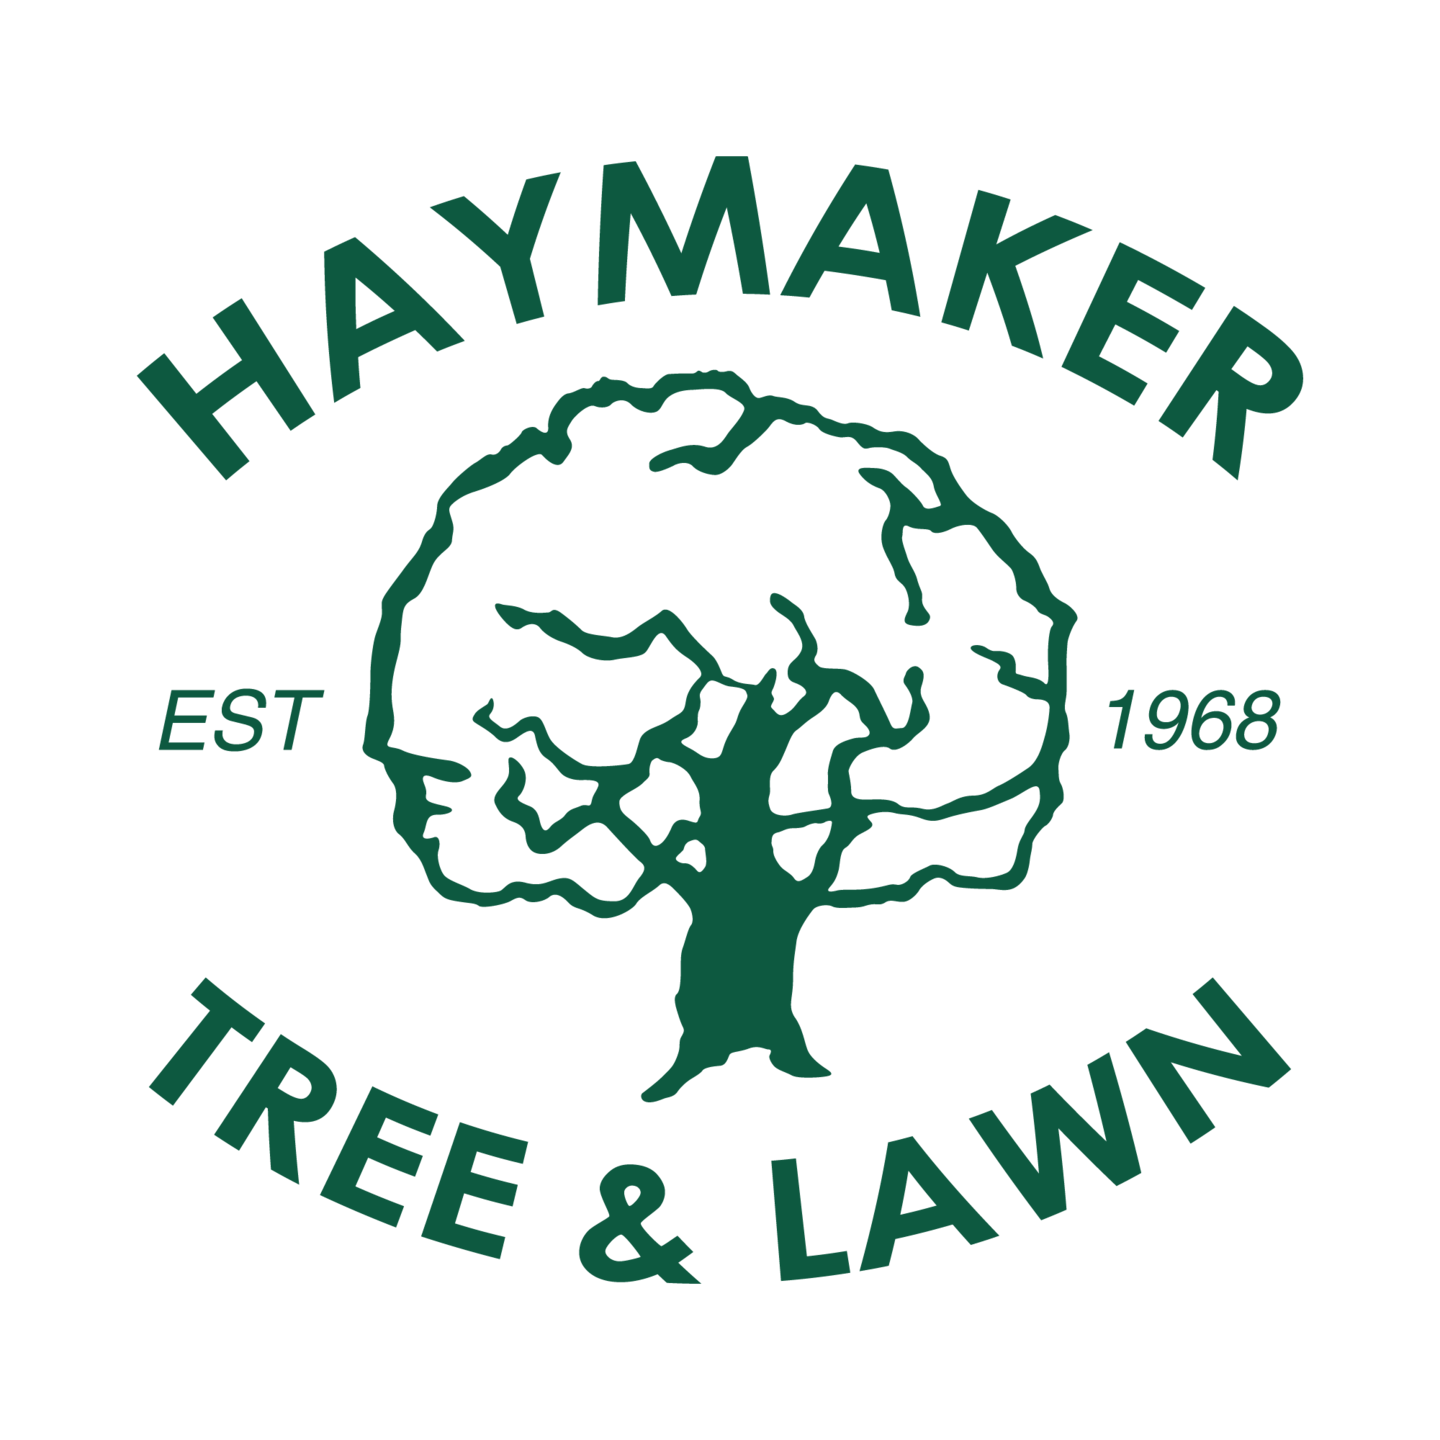 Haymaker Tree And Lawn Inc